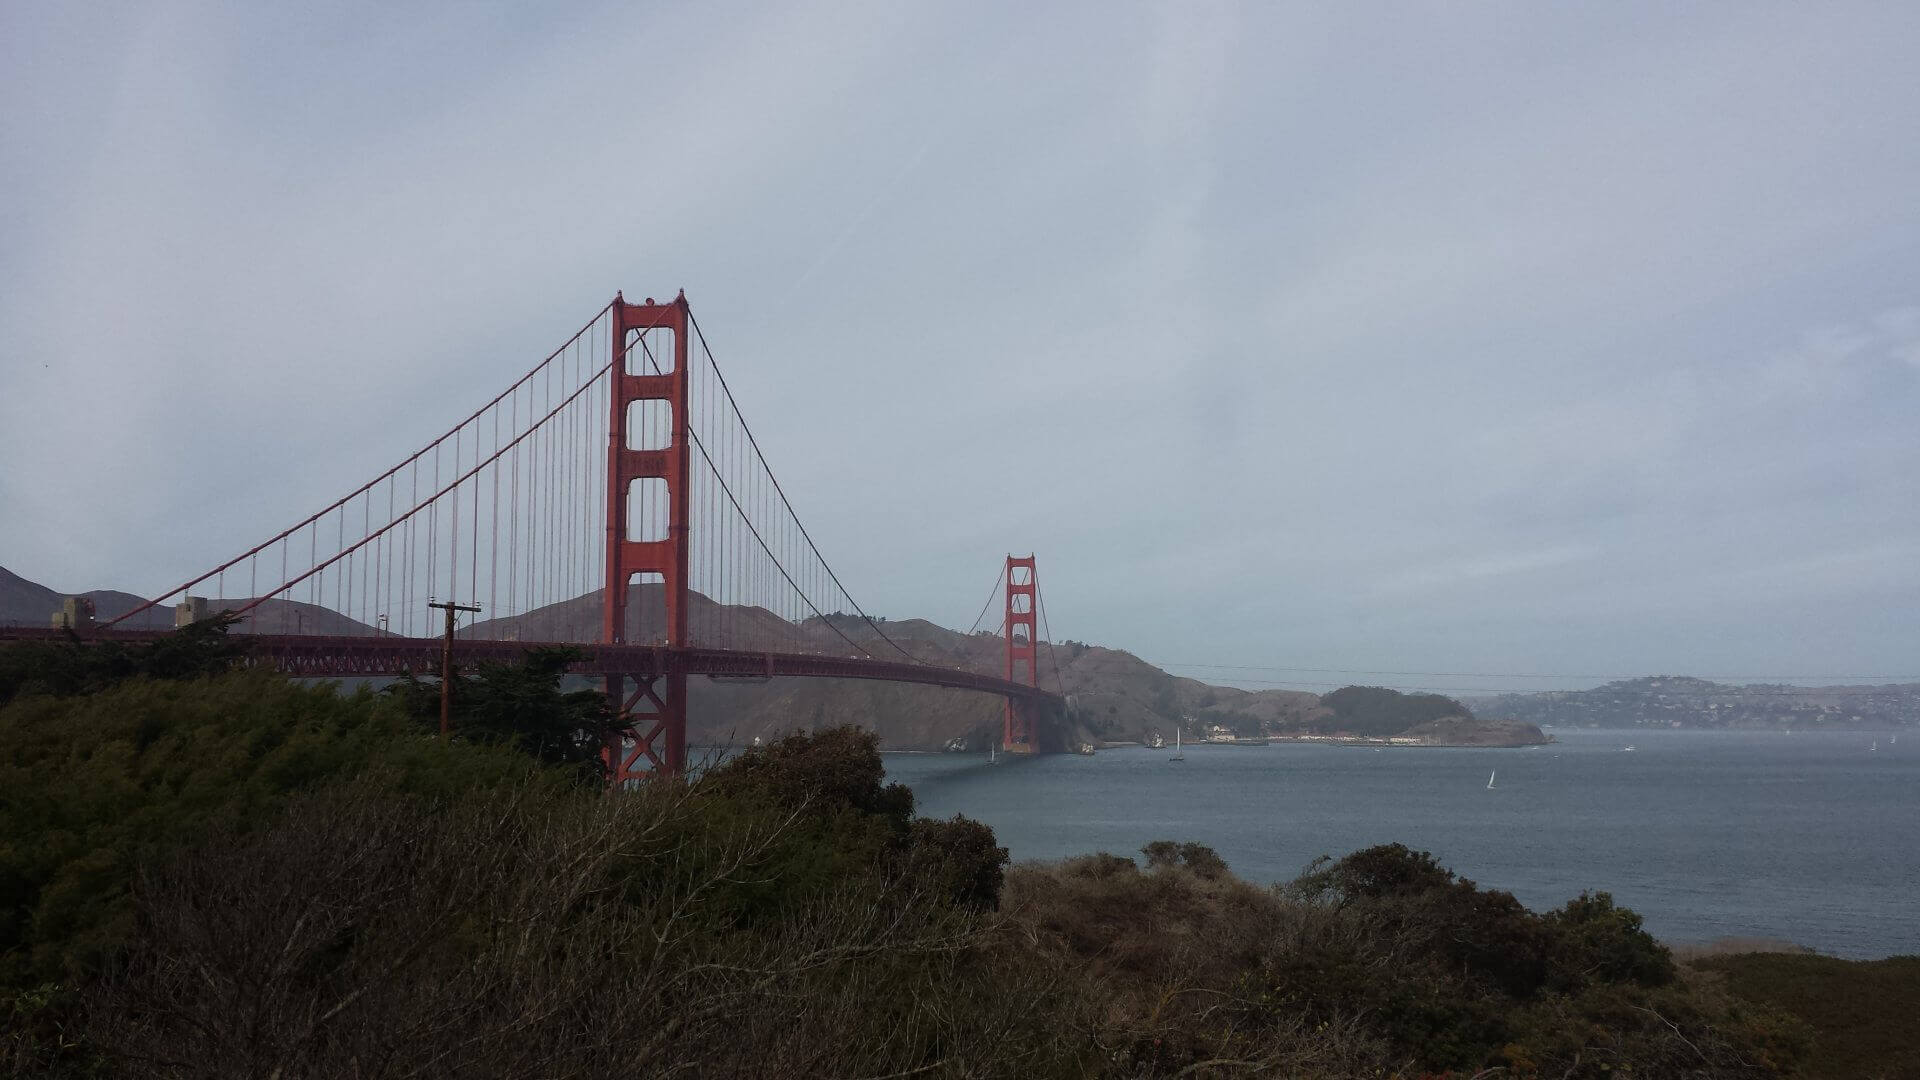 Golden Gate Bridge. Bilder und Eindrücke aus San Francisco, California, United States.